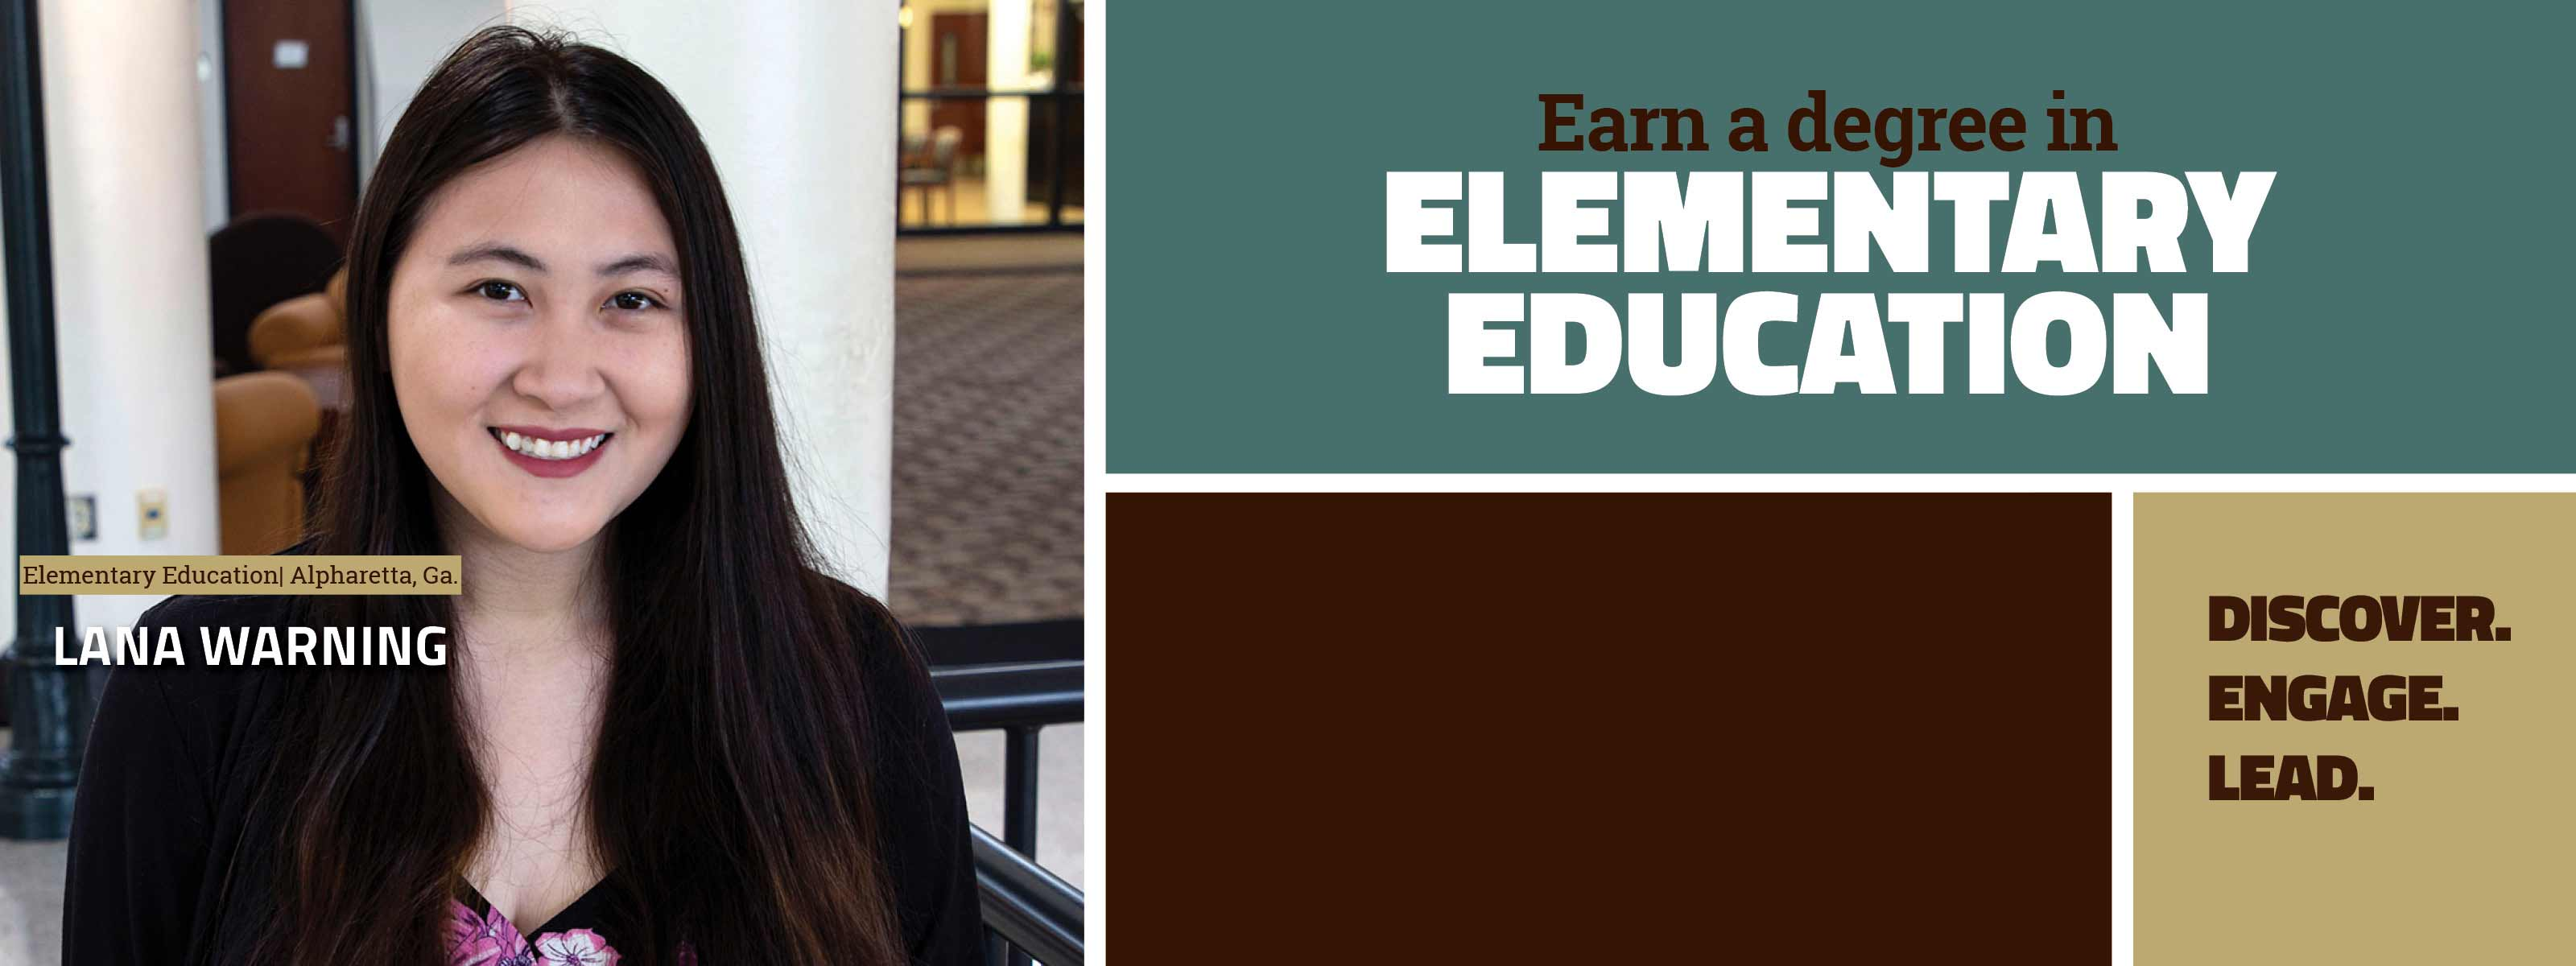 Earn a degree in Elementary Education - Discover. Engage. Lead.